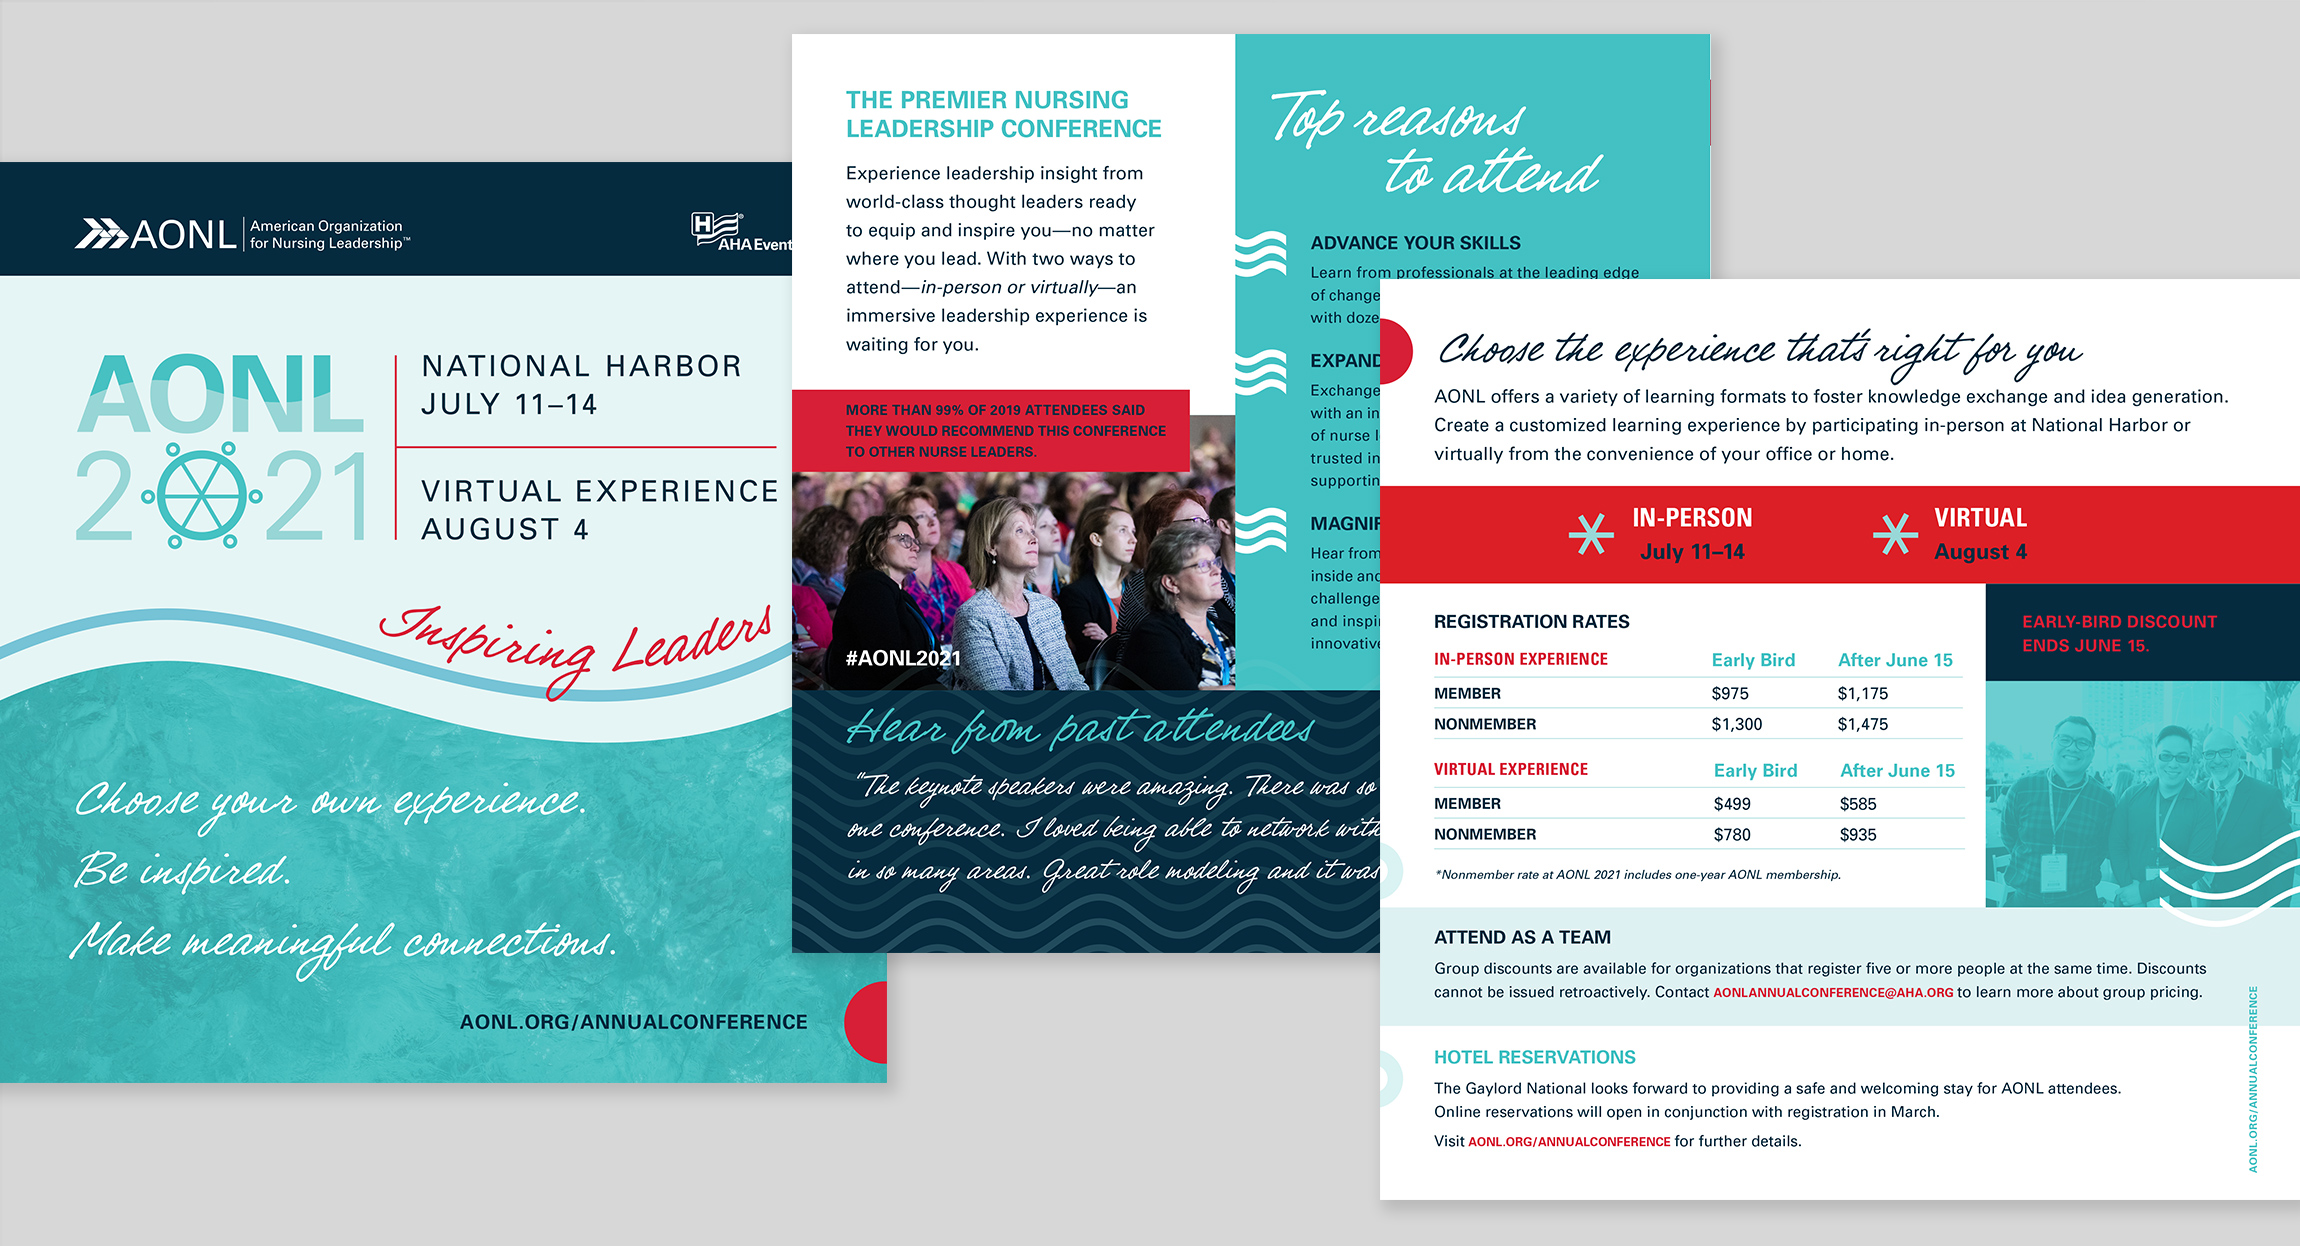 AONL 2021 Annual Conference Brochure Design by Hughes Design